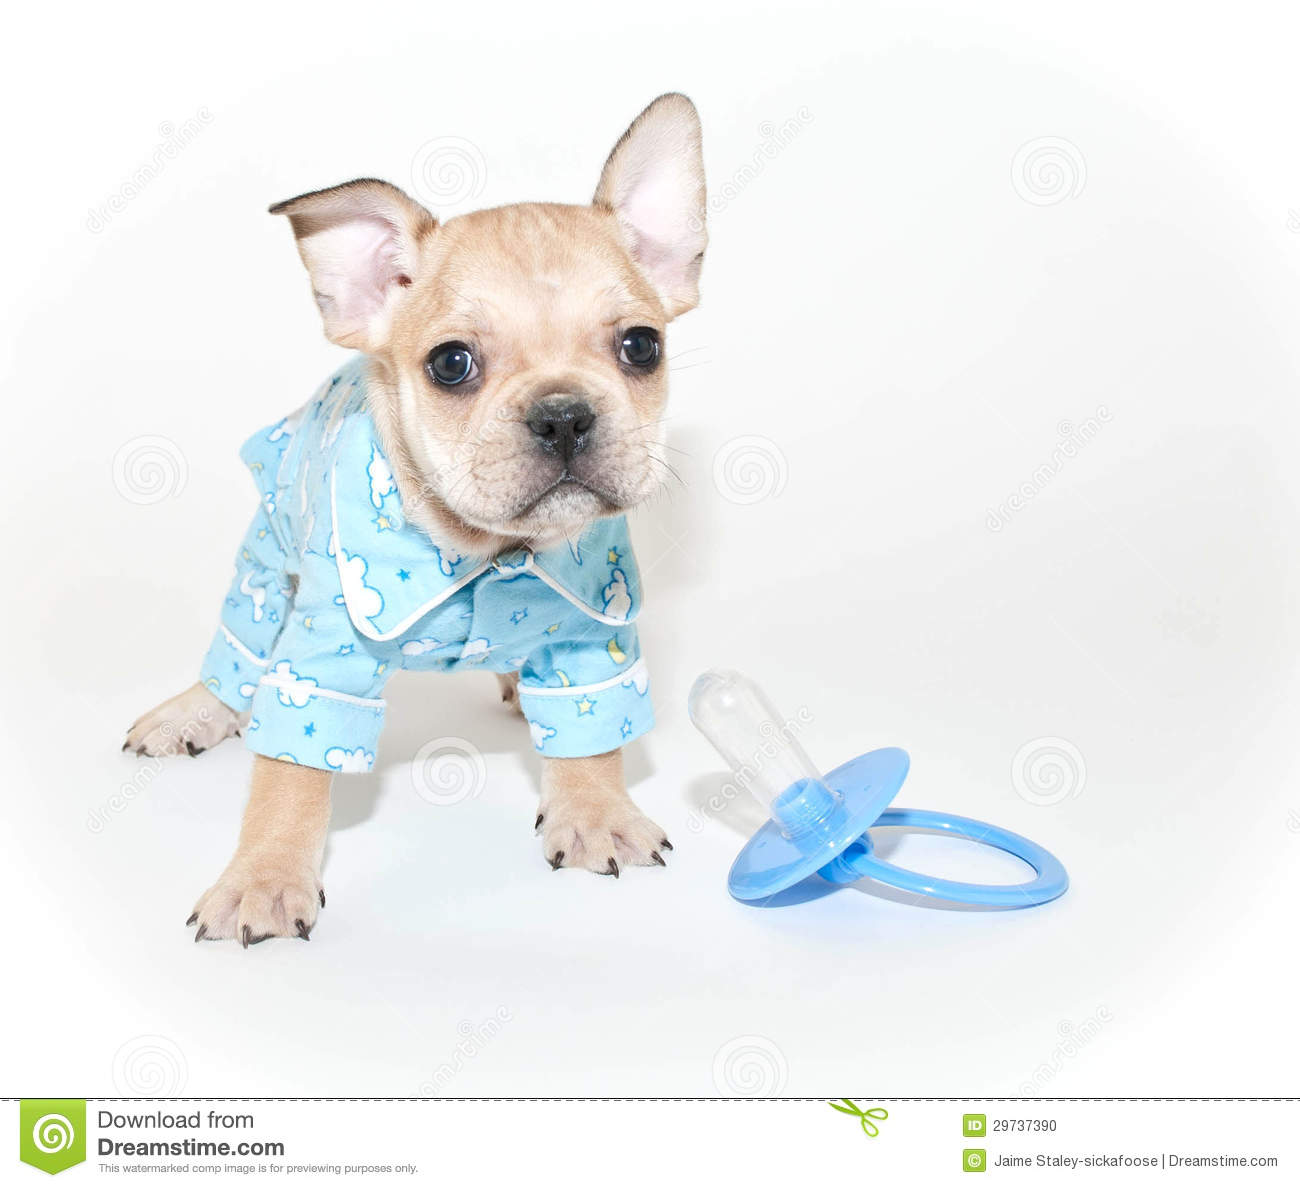 Pyjamas De Port De Chiot De Bouledogue Français Photo